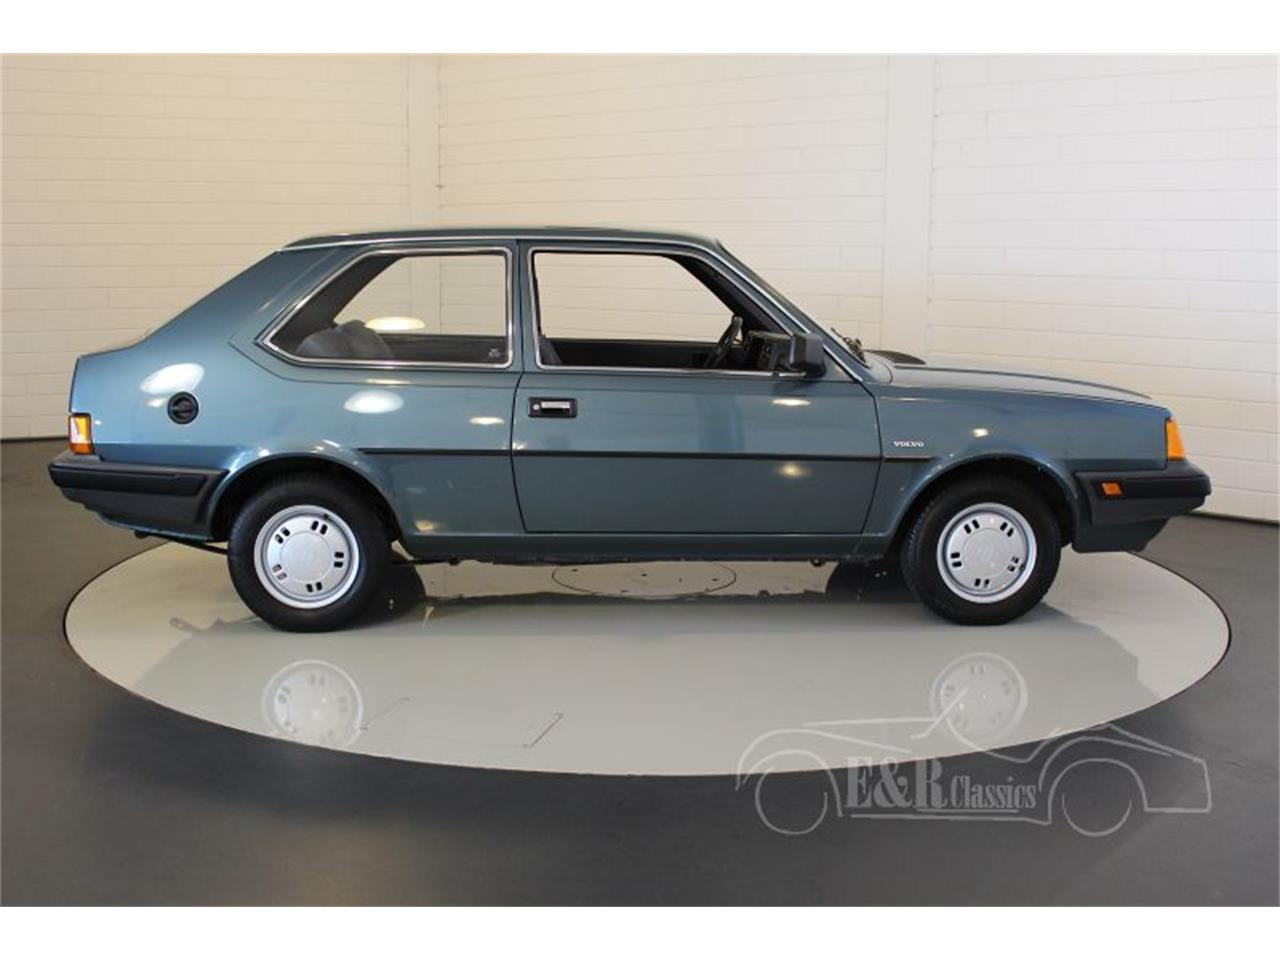 Large Picture of '88 Volvo 340 DL Offered by E & R Classics - LDMX